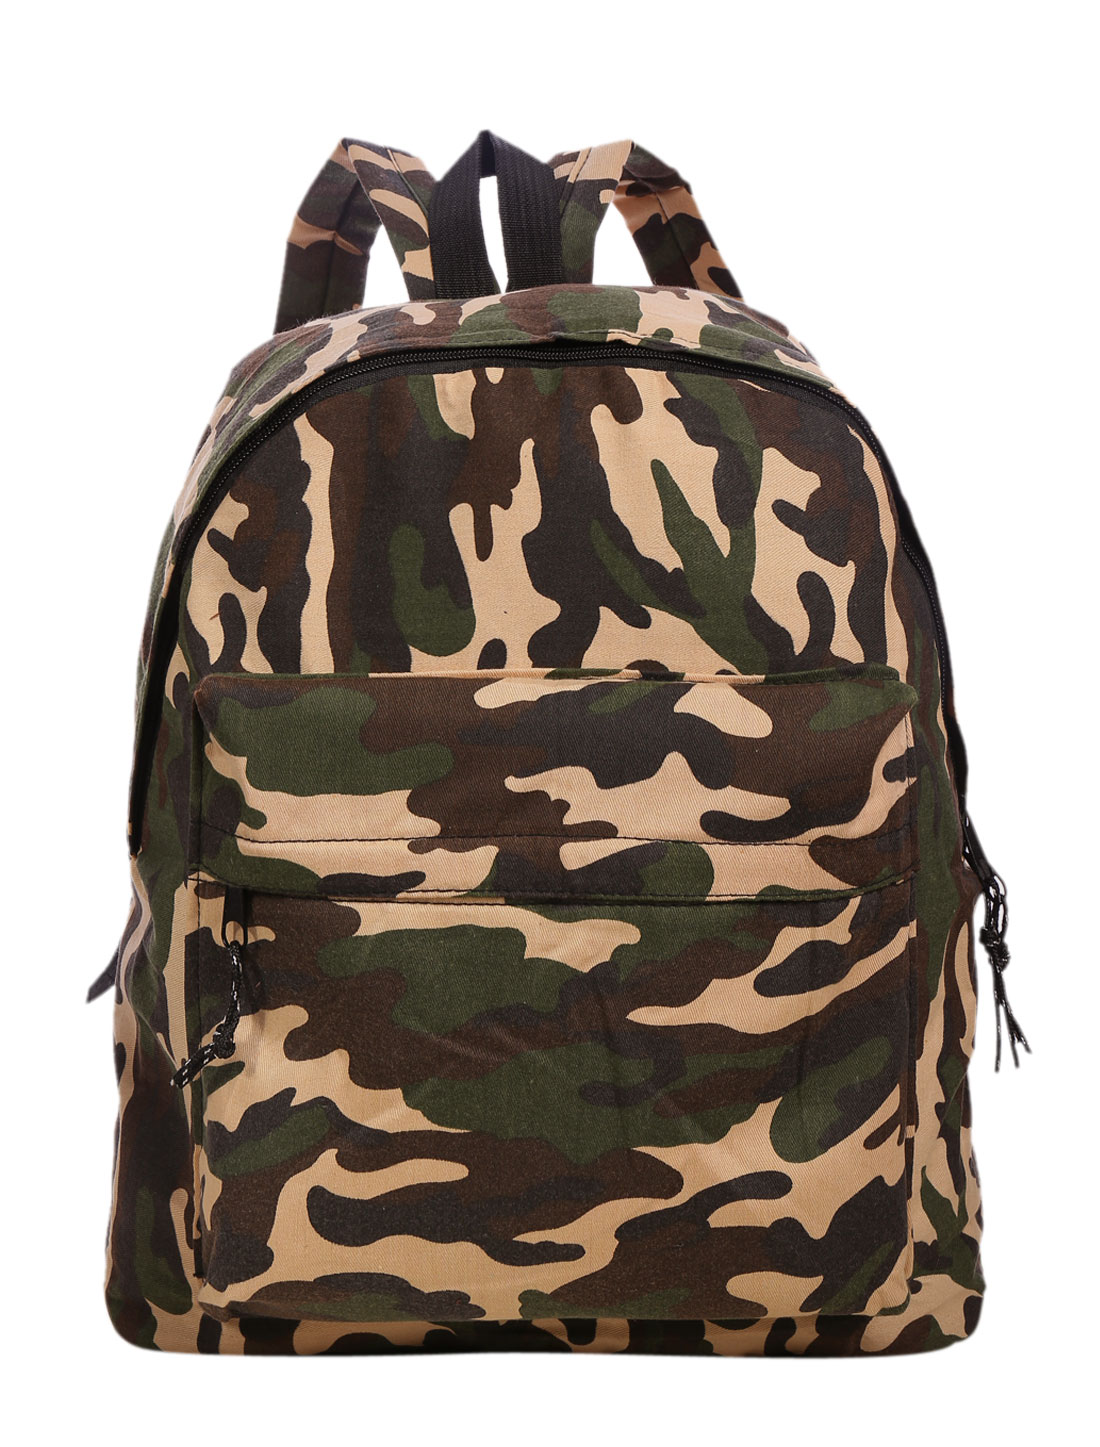 Men Camouflage Print Zip Closure Front Pocket Casual Backpack Army Green Beige